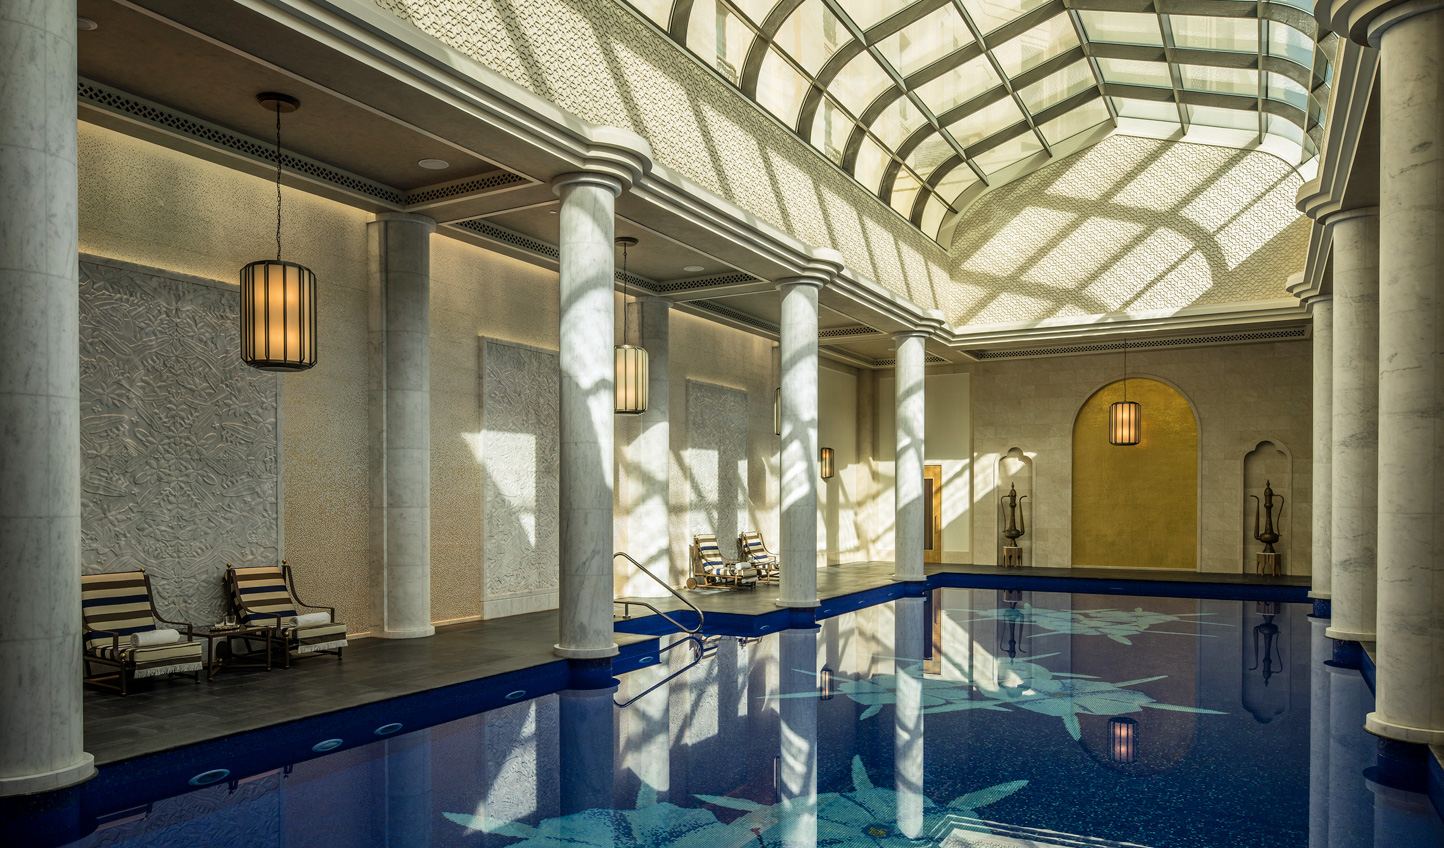 Head to the spa and discover uninterrupted bliss